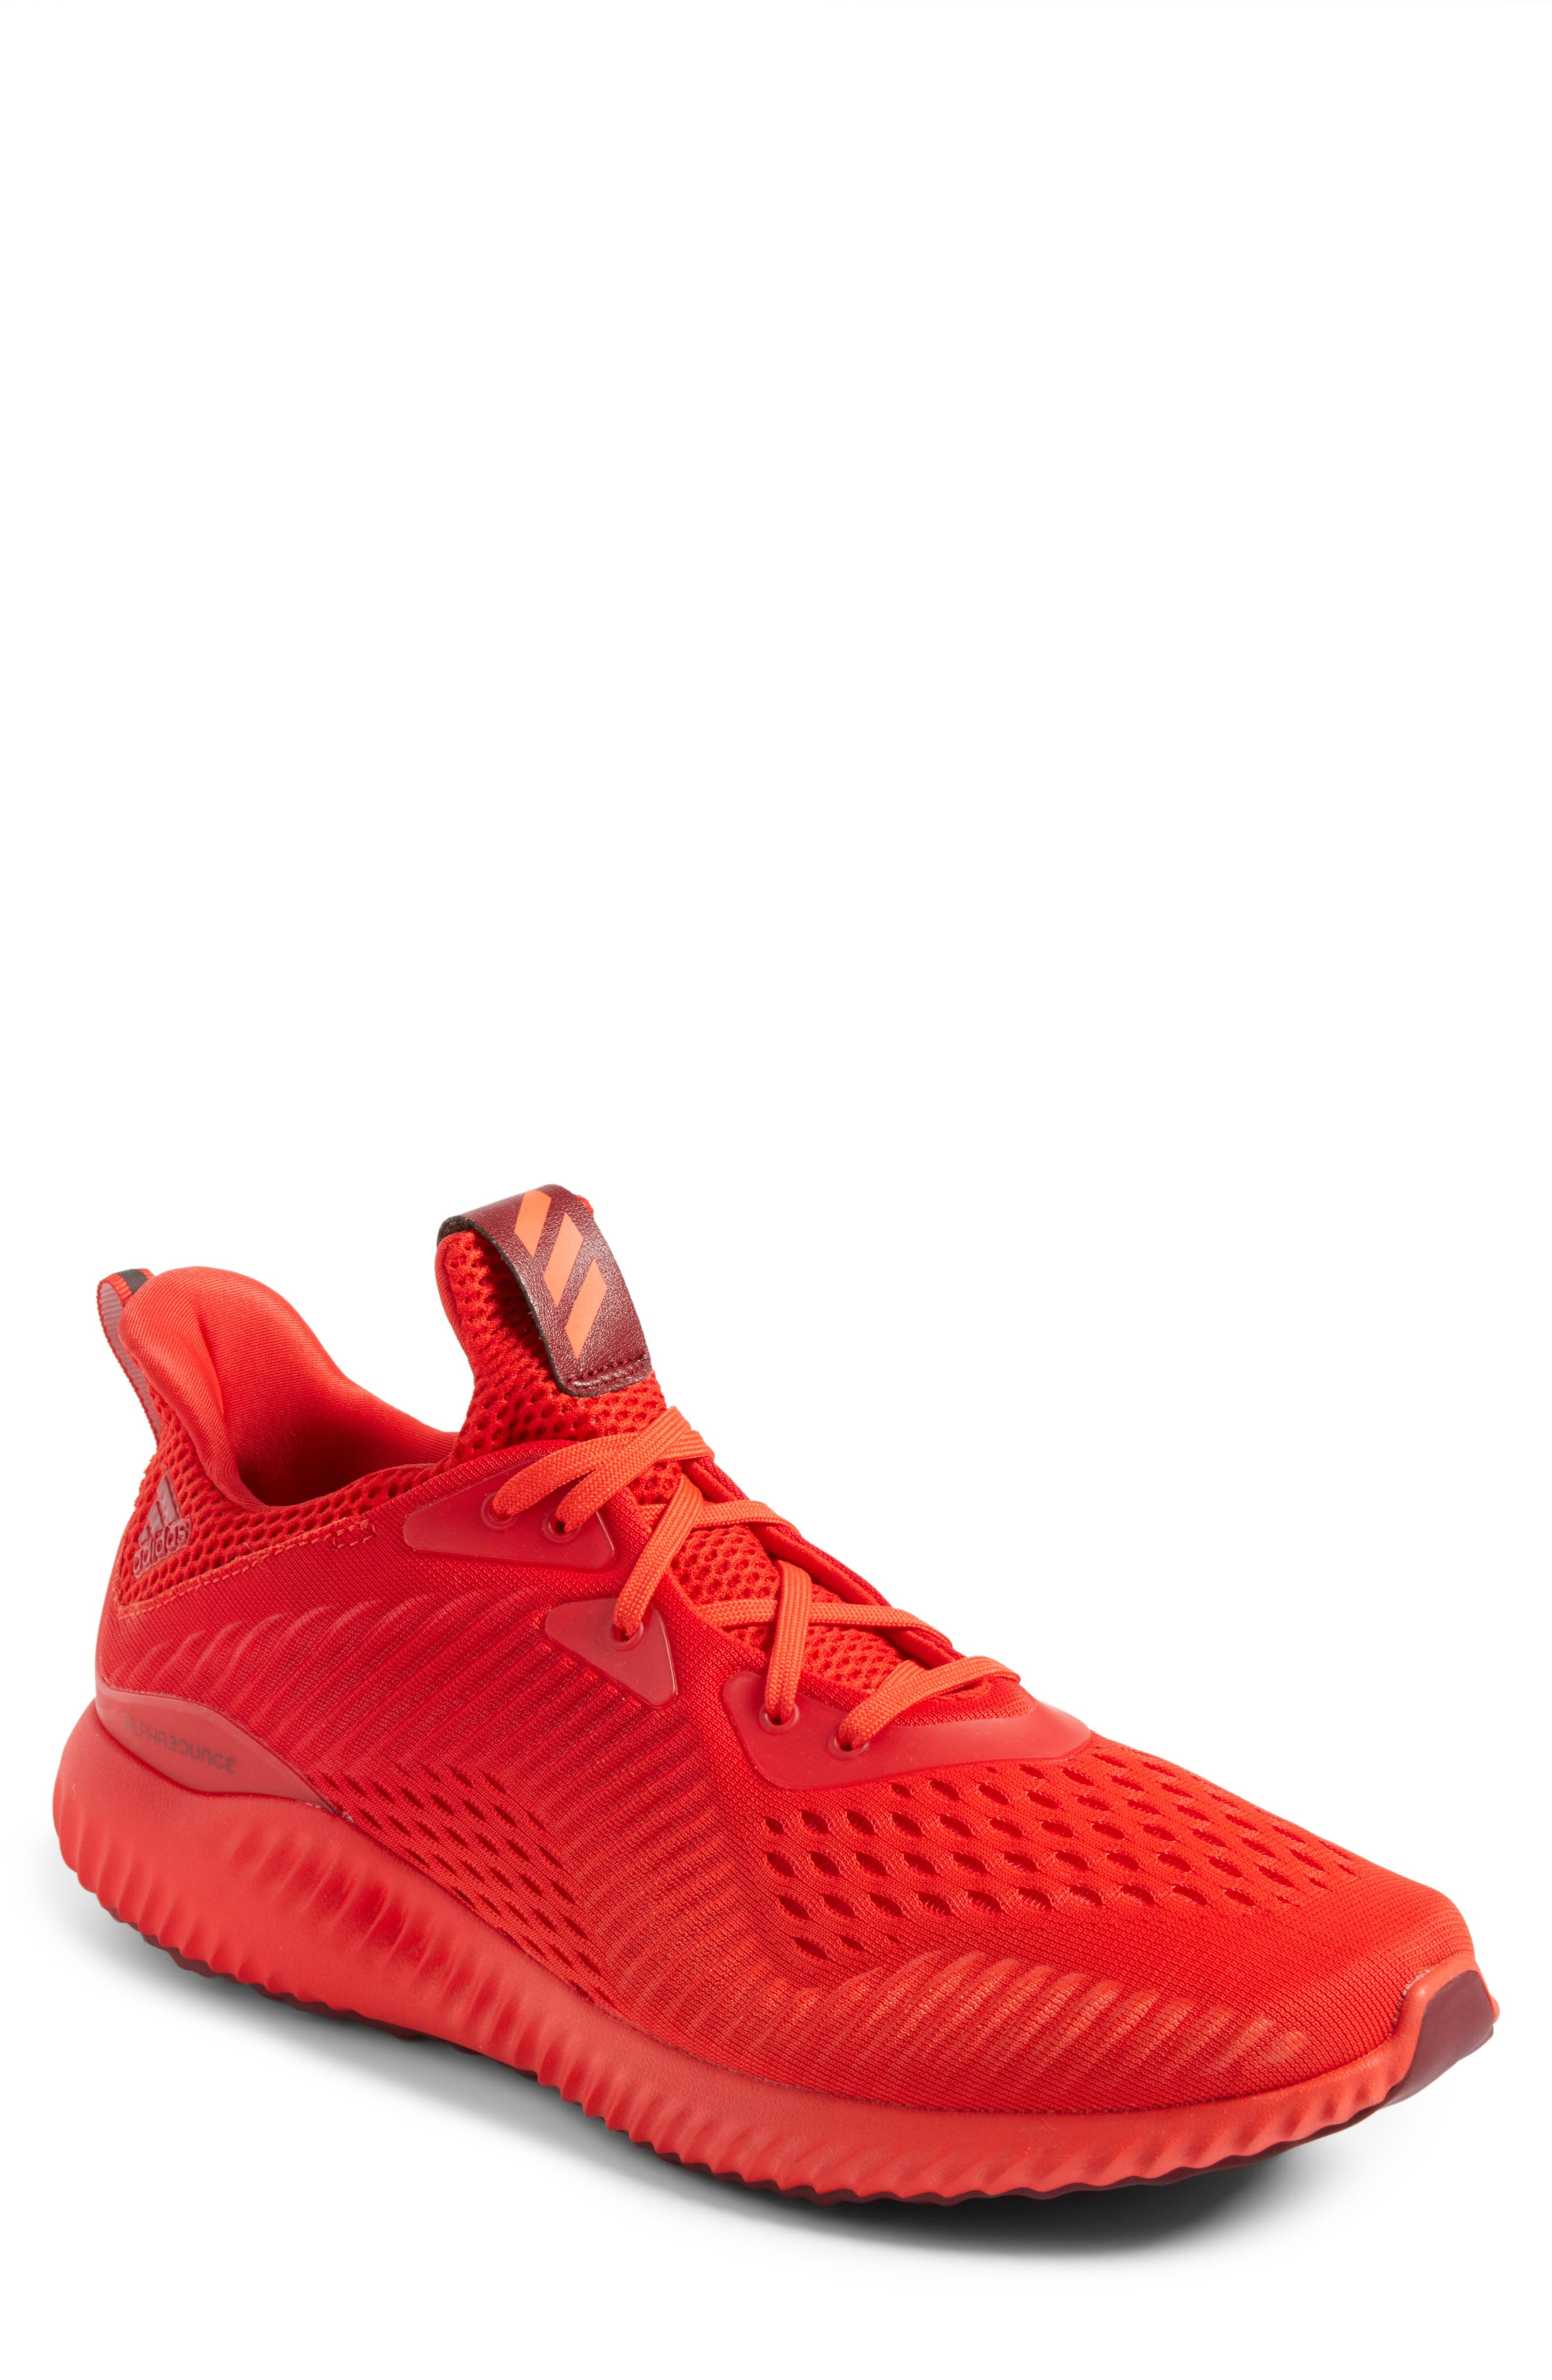 AlphaBounce Running Shoe,                         Main,                         color, 600